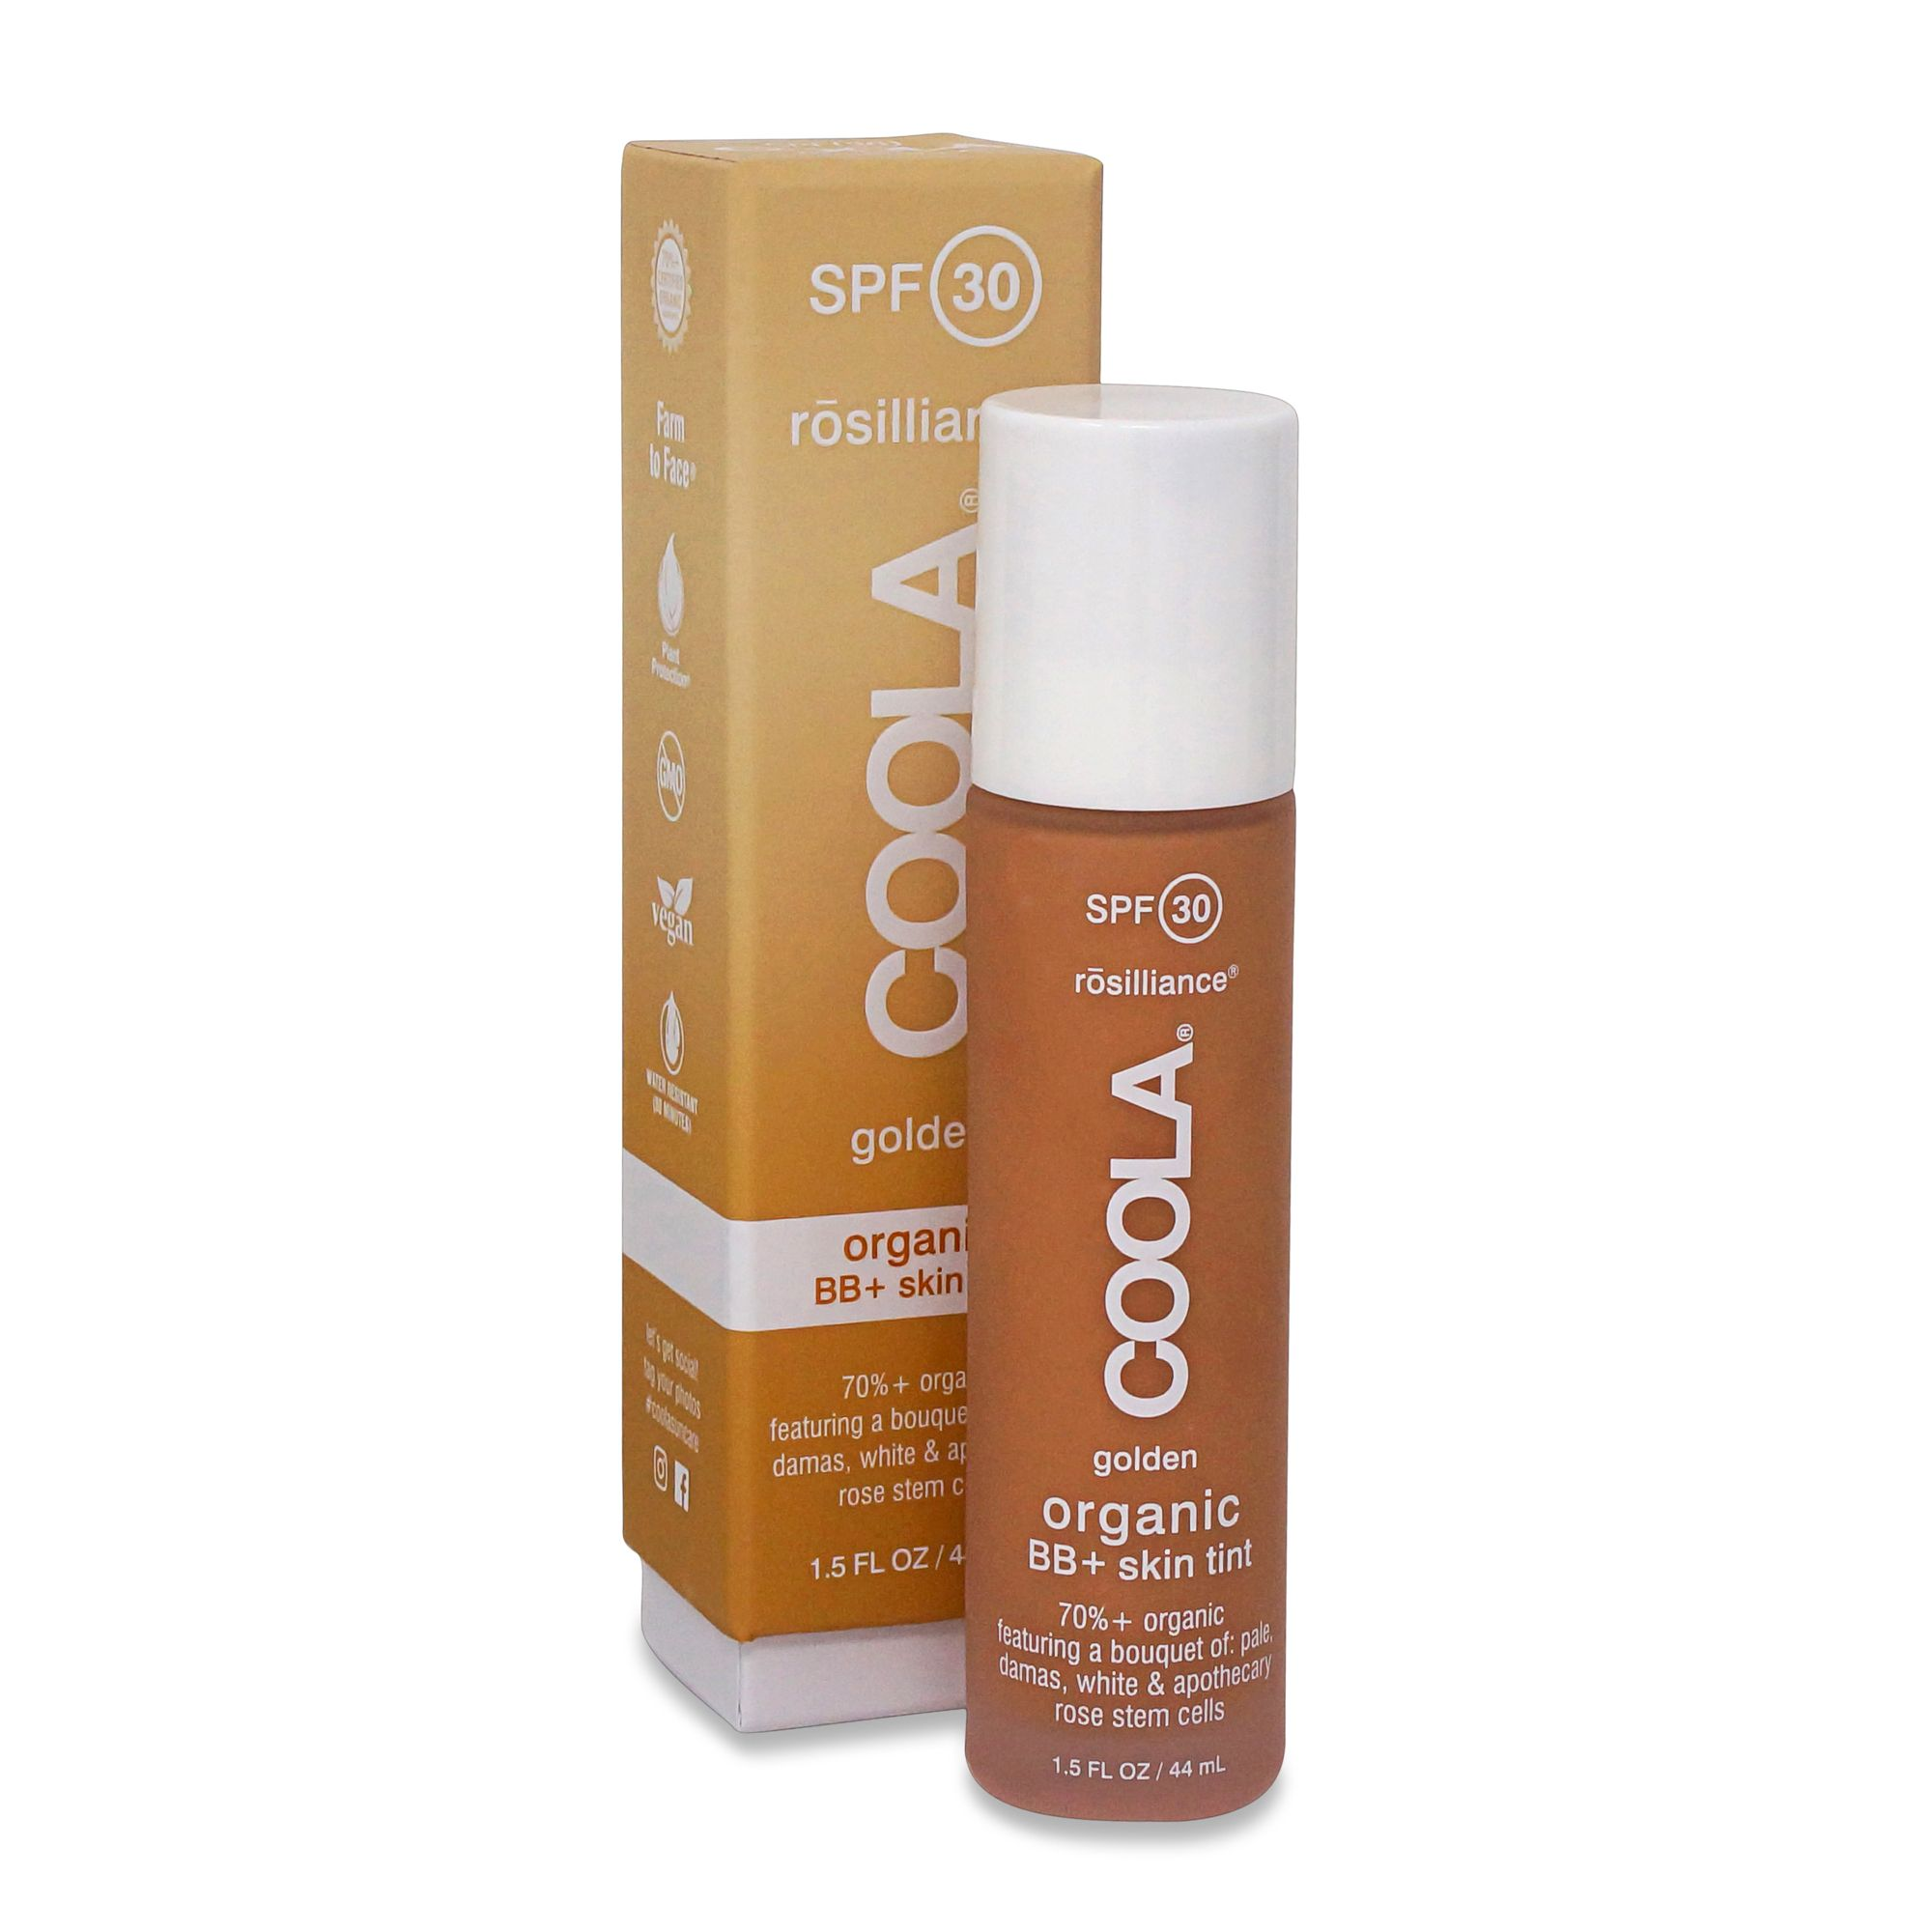 Free 2-day shipping on qualified orders over $35. Buy COOLA Rosilliance SPF 30 BB+ Cream Golden 1.5Oz at Walmart.com